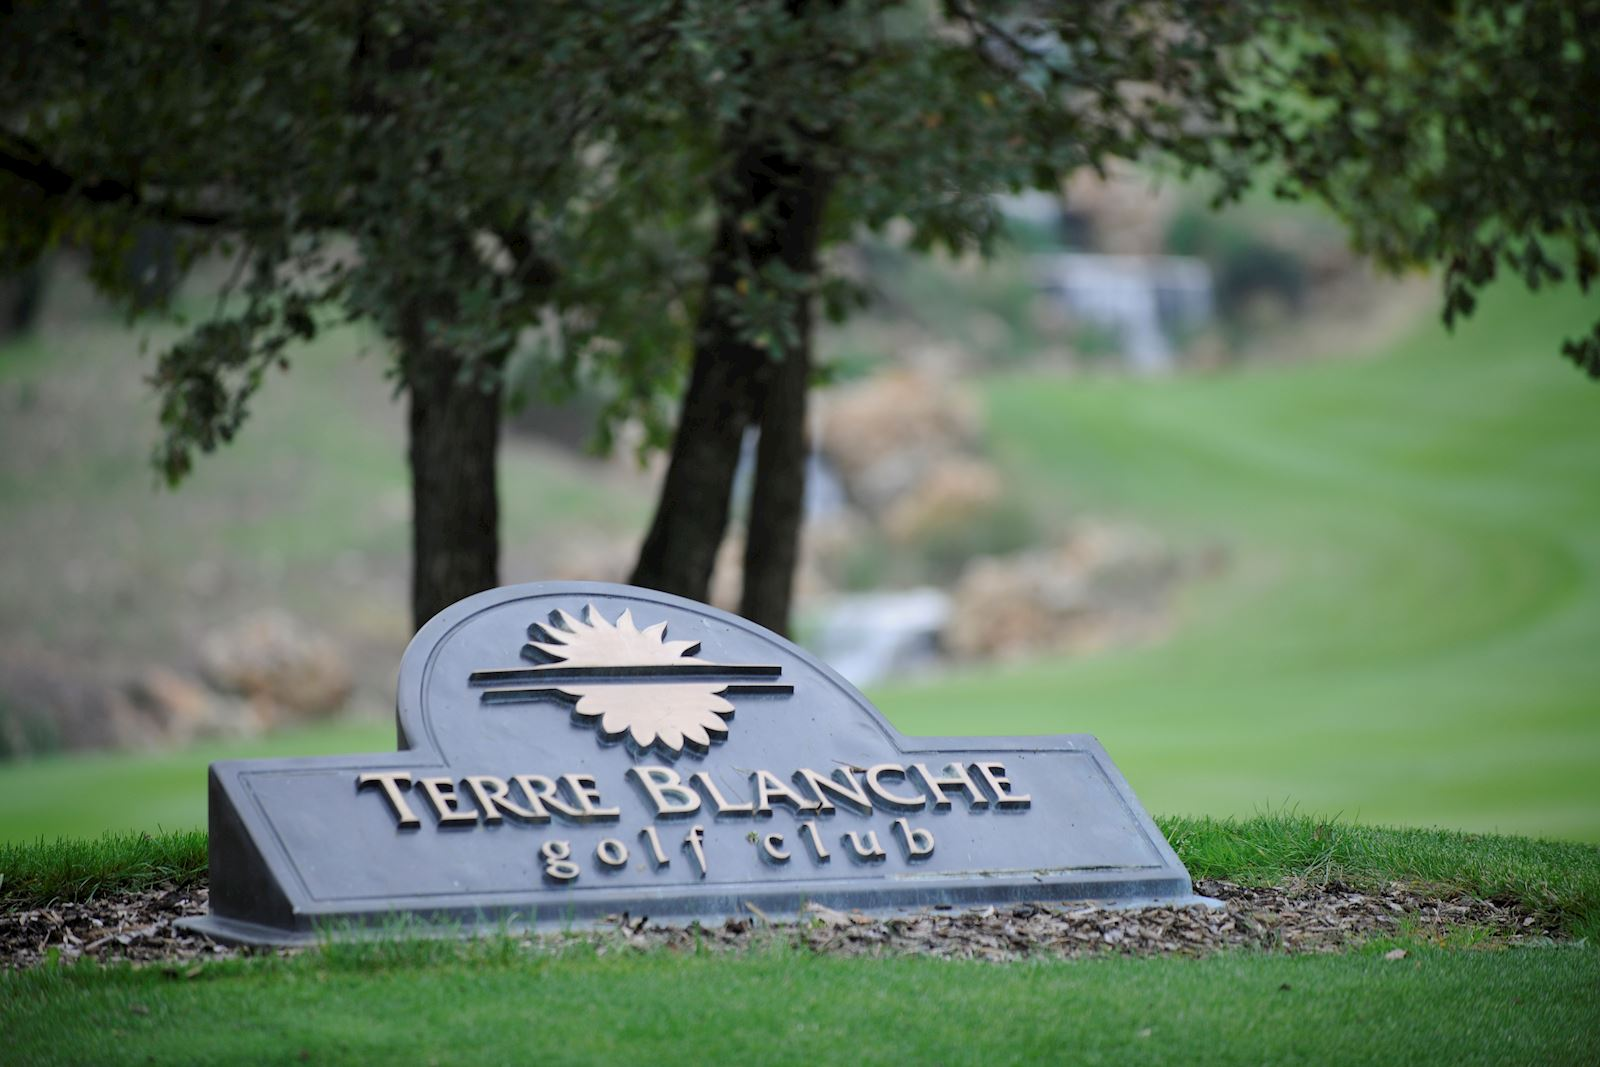 Terre Blanche Golf Club - Glof 2 parcours 18 trous